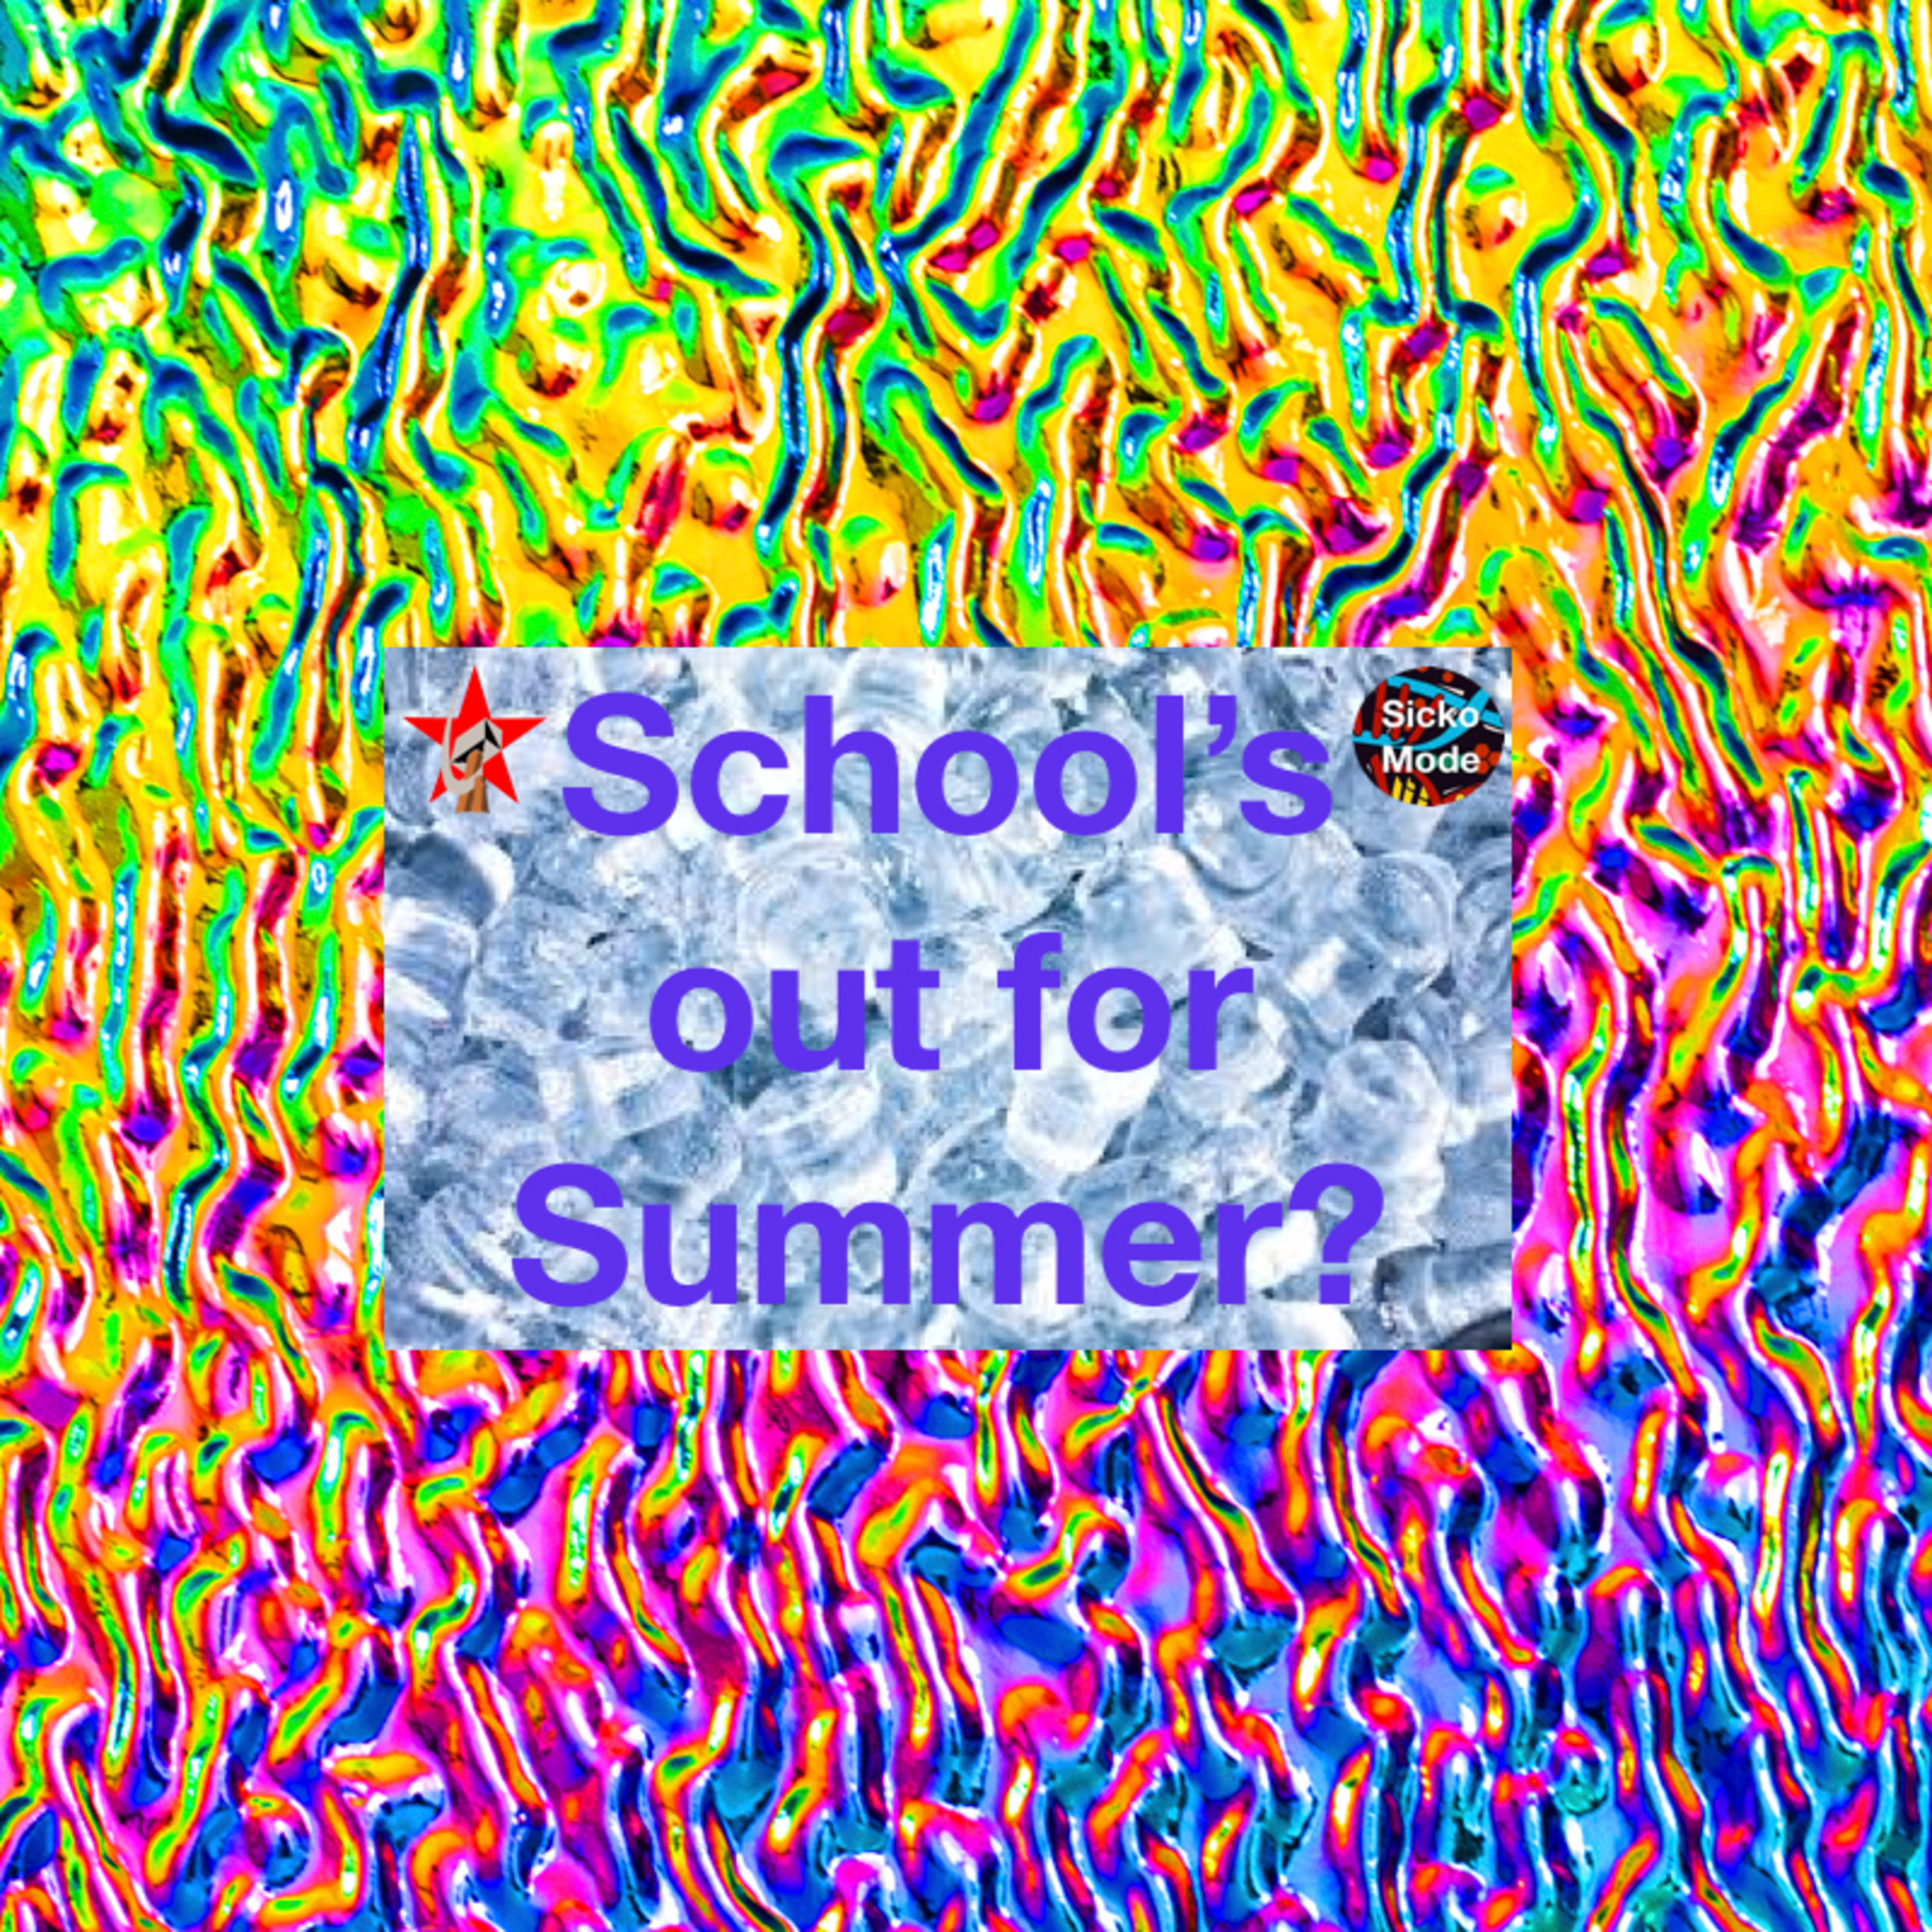 School's out for Summer?